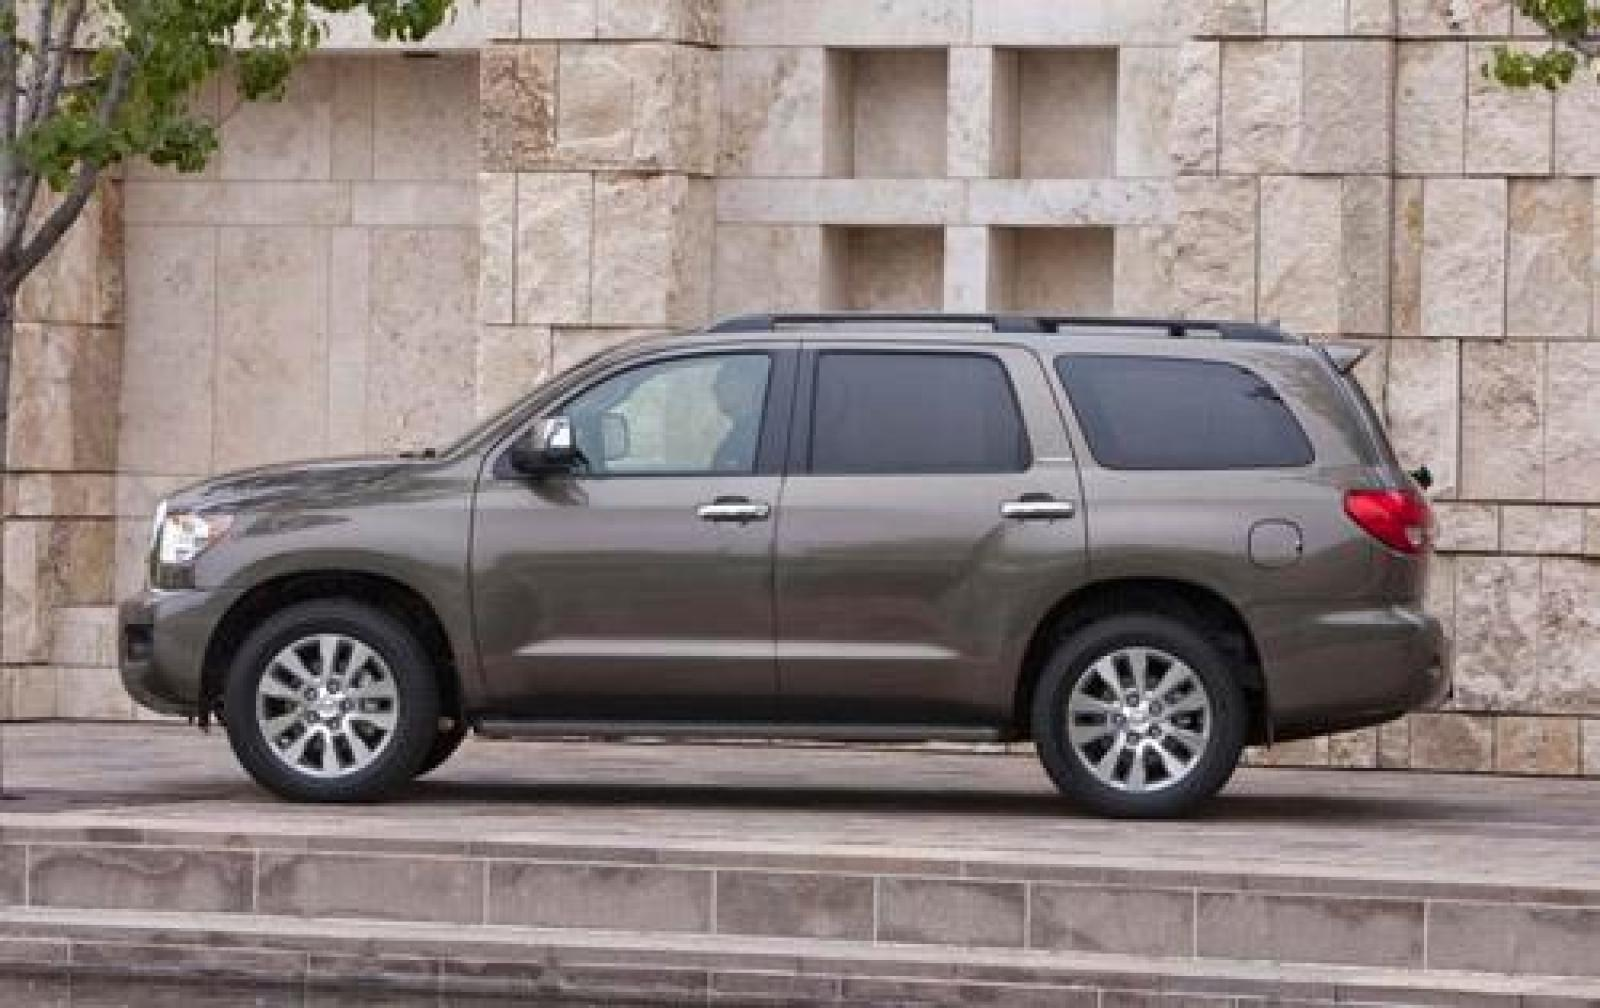 2012 toyota sequoia information and photos zombiedrive. Black Bedroom Furniture Sets. Home Design Ideas